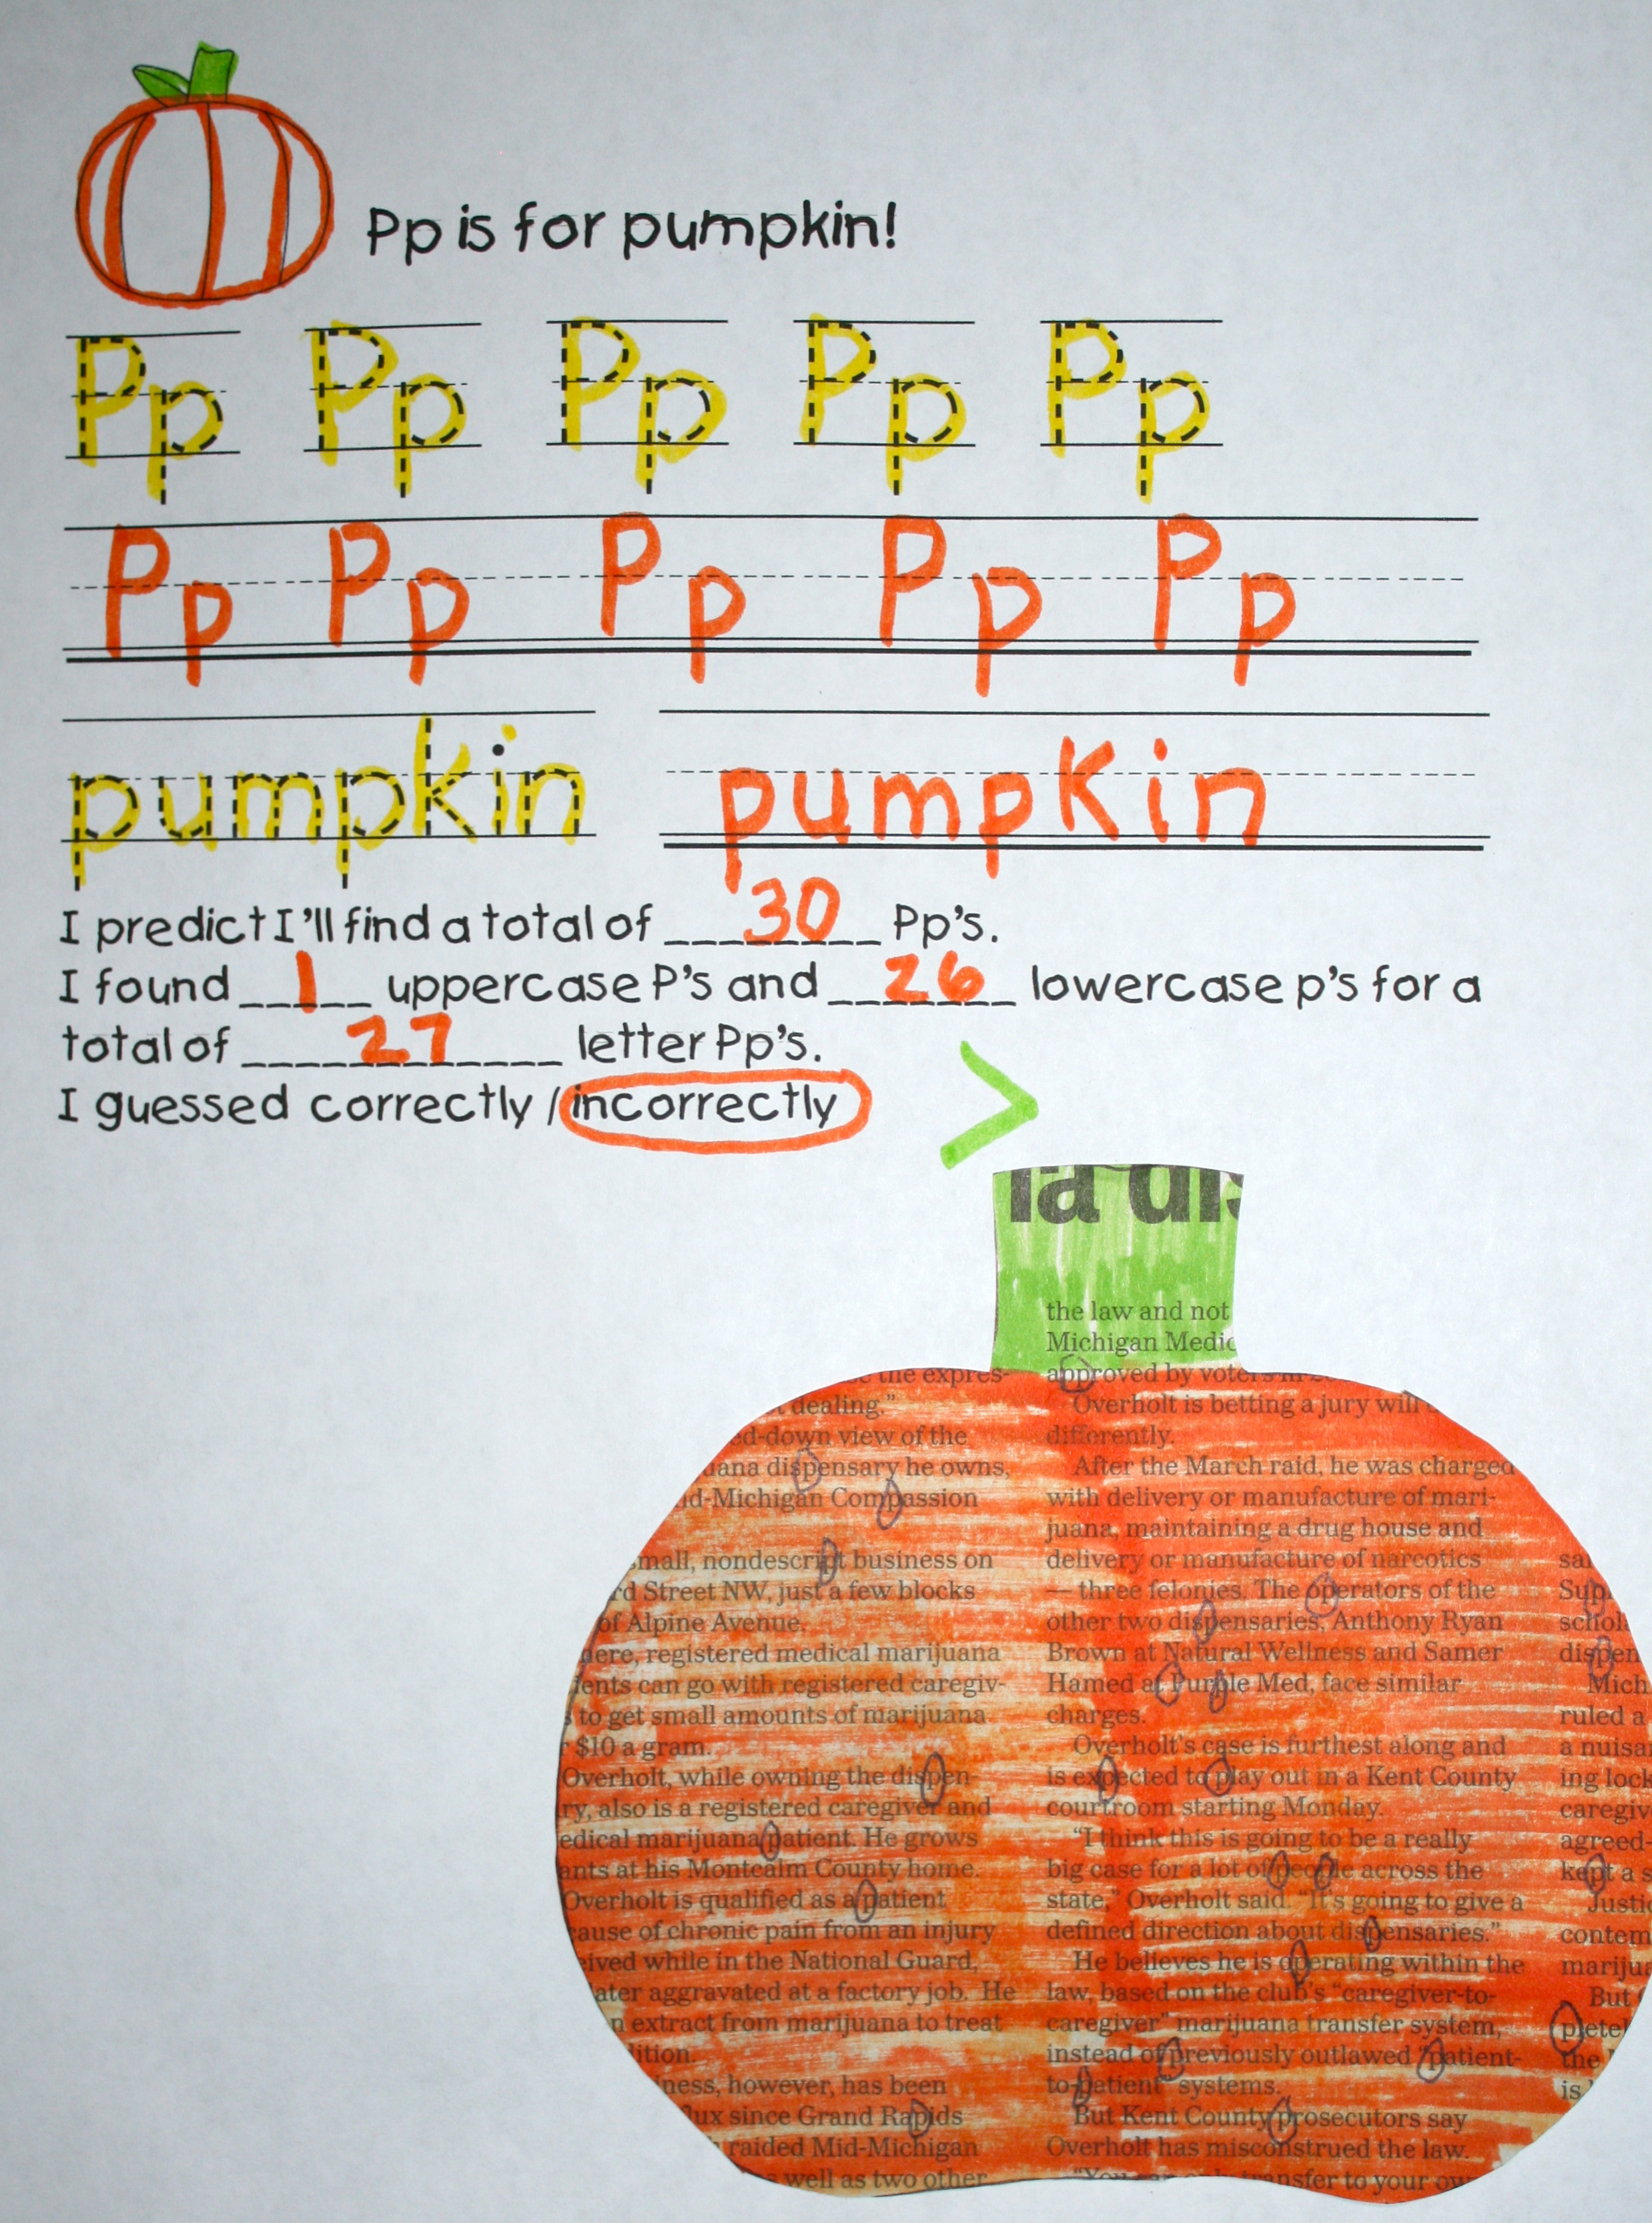 apple activities, pumpkin activities, leaf activities, football activities, alphabet activities, common core alphabet, alphabet games, alphabet crafts, upper and lowercase alphabet worksheets, upper and lowercase alphabet games, common core kindergarten, common core 1st grade, Daily 5 activities for fall, daily 5 activities,free common core lessons for kindergarten and first grade,